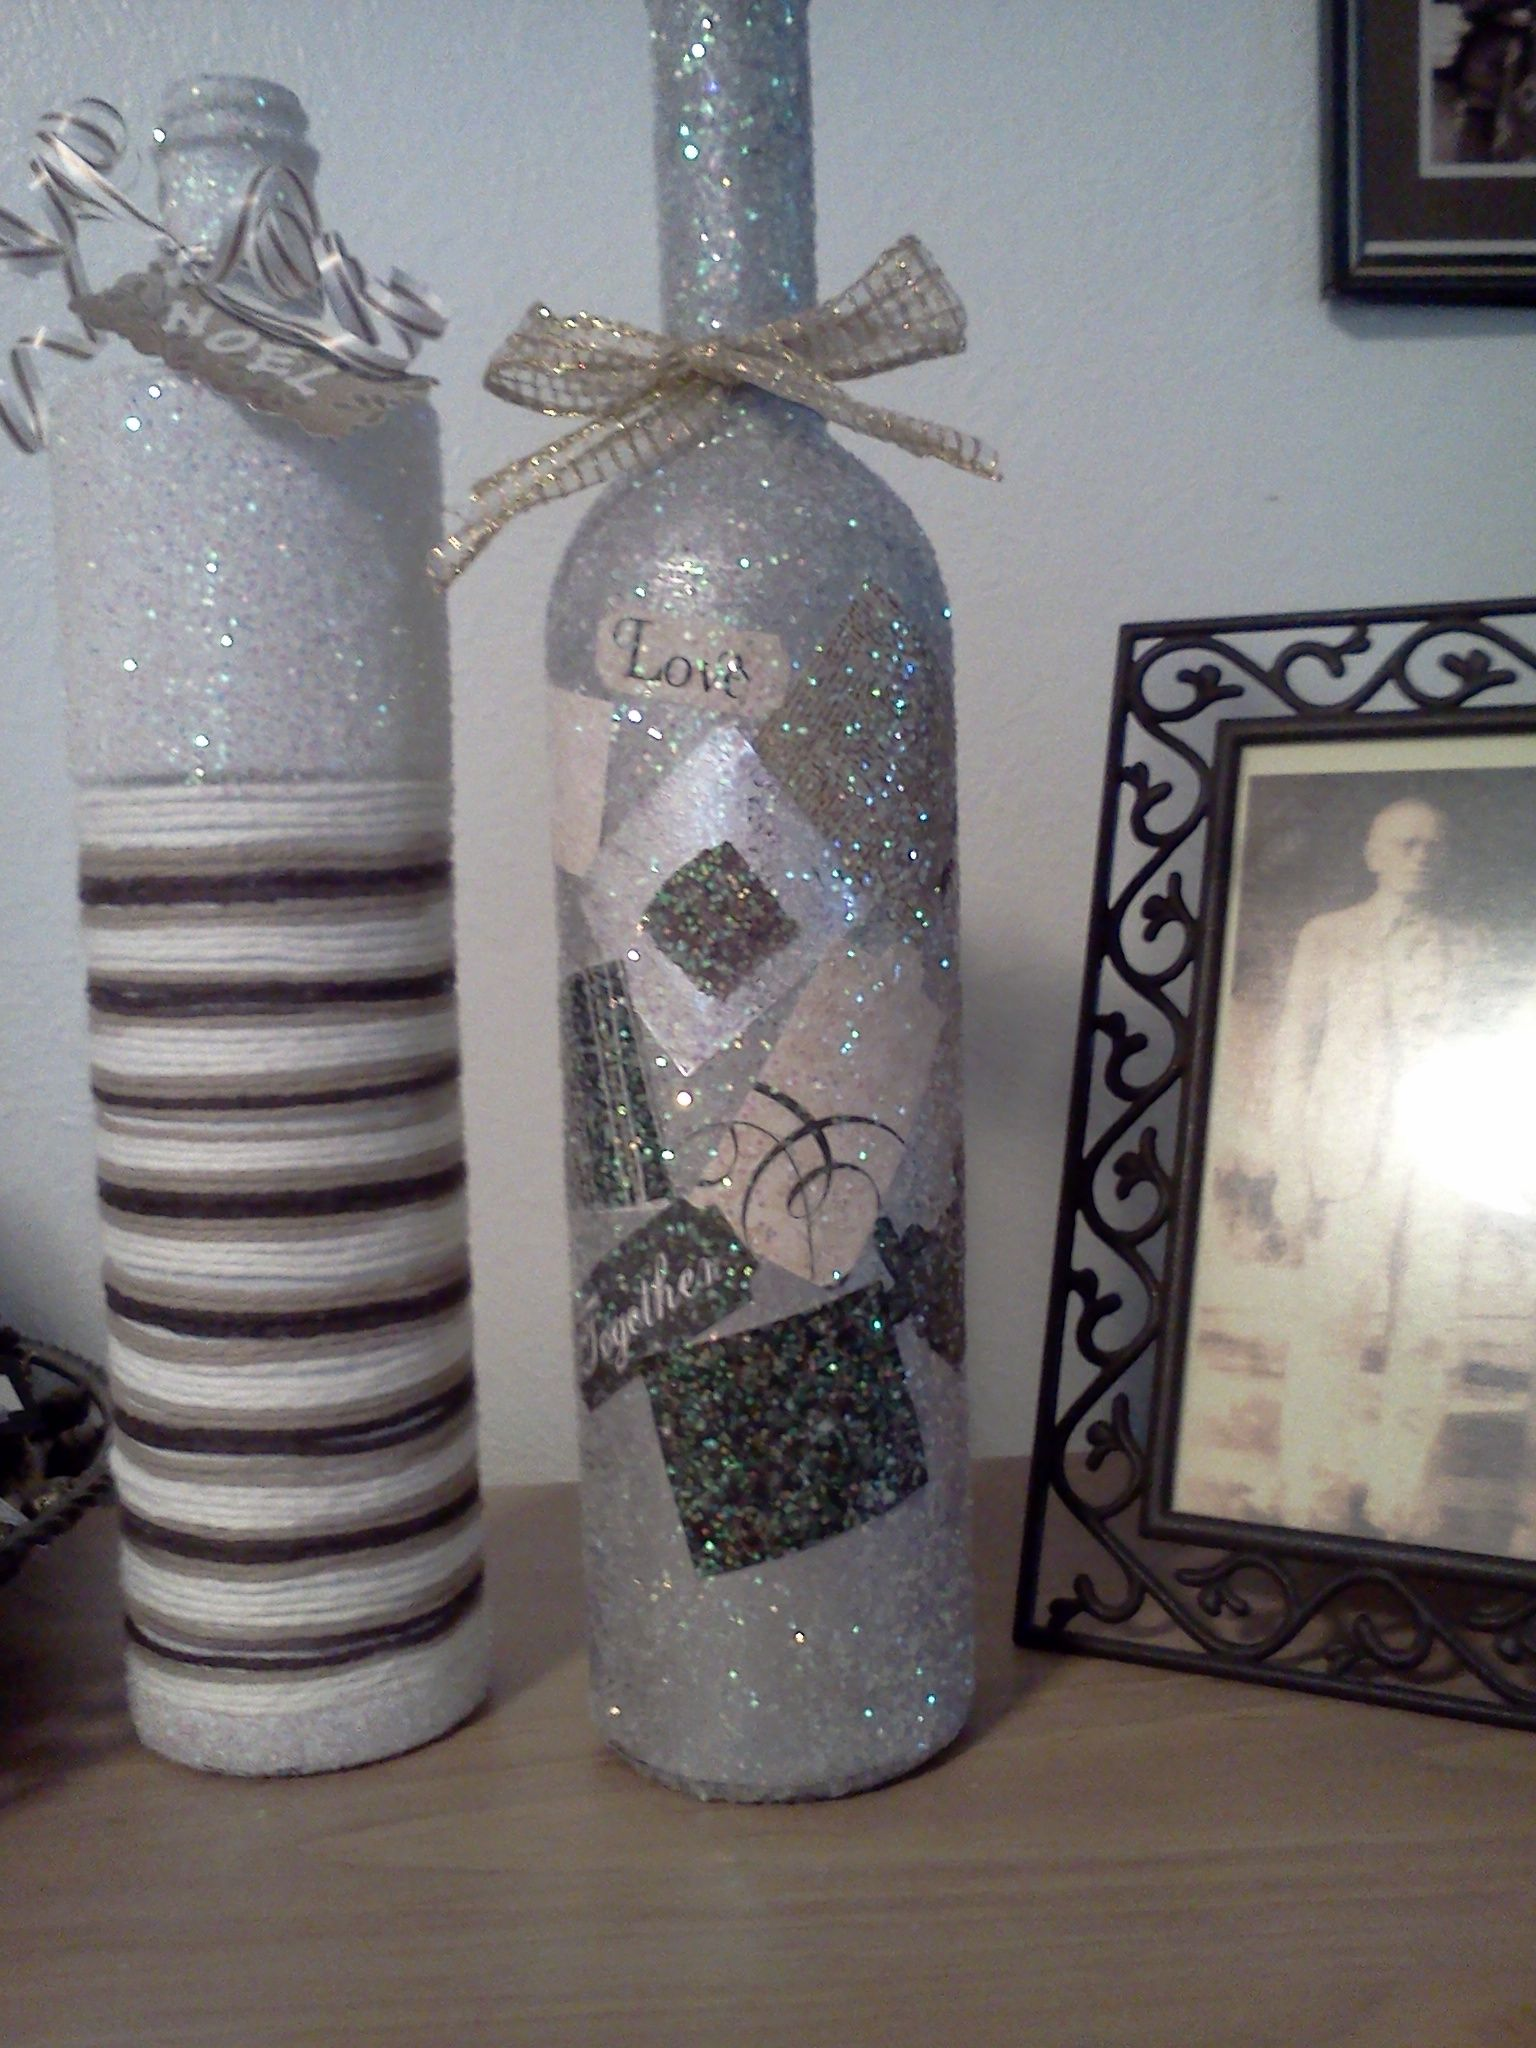 Crafty Neat Things On Pinterest Diy Wall Decor Wine Bottles And Painted Wine Bottles